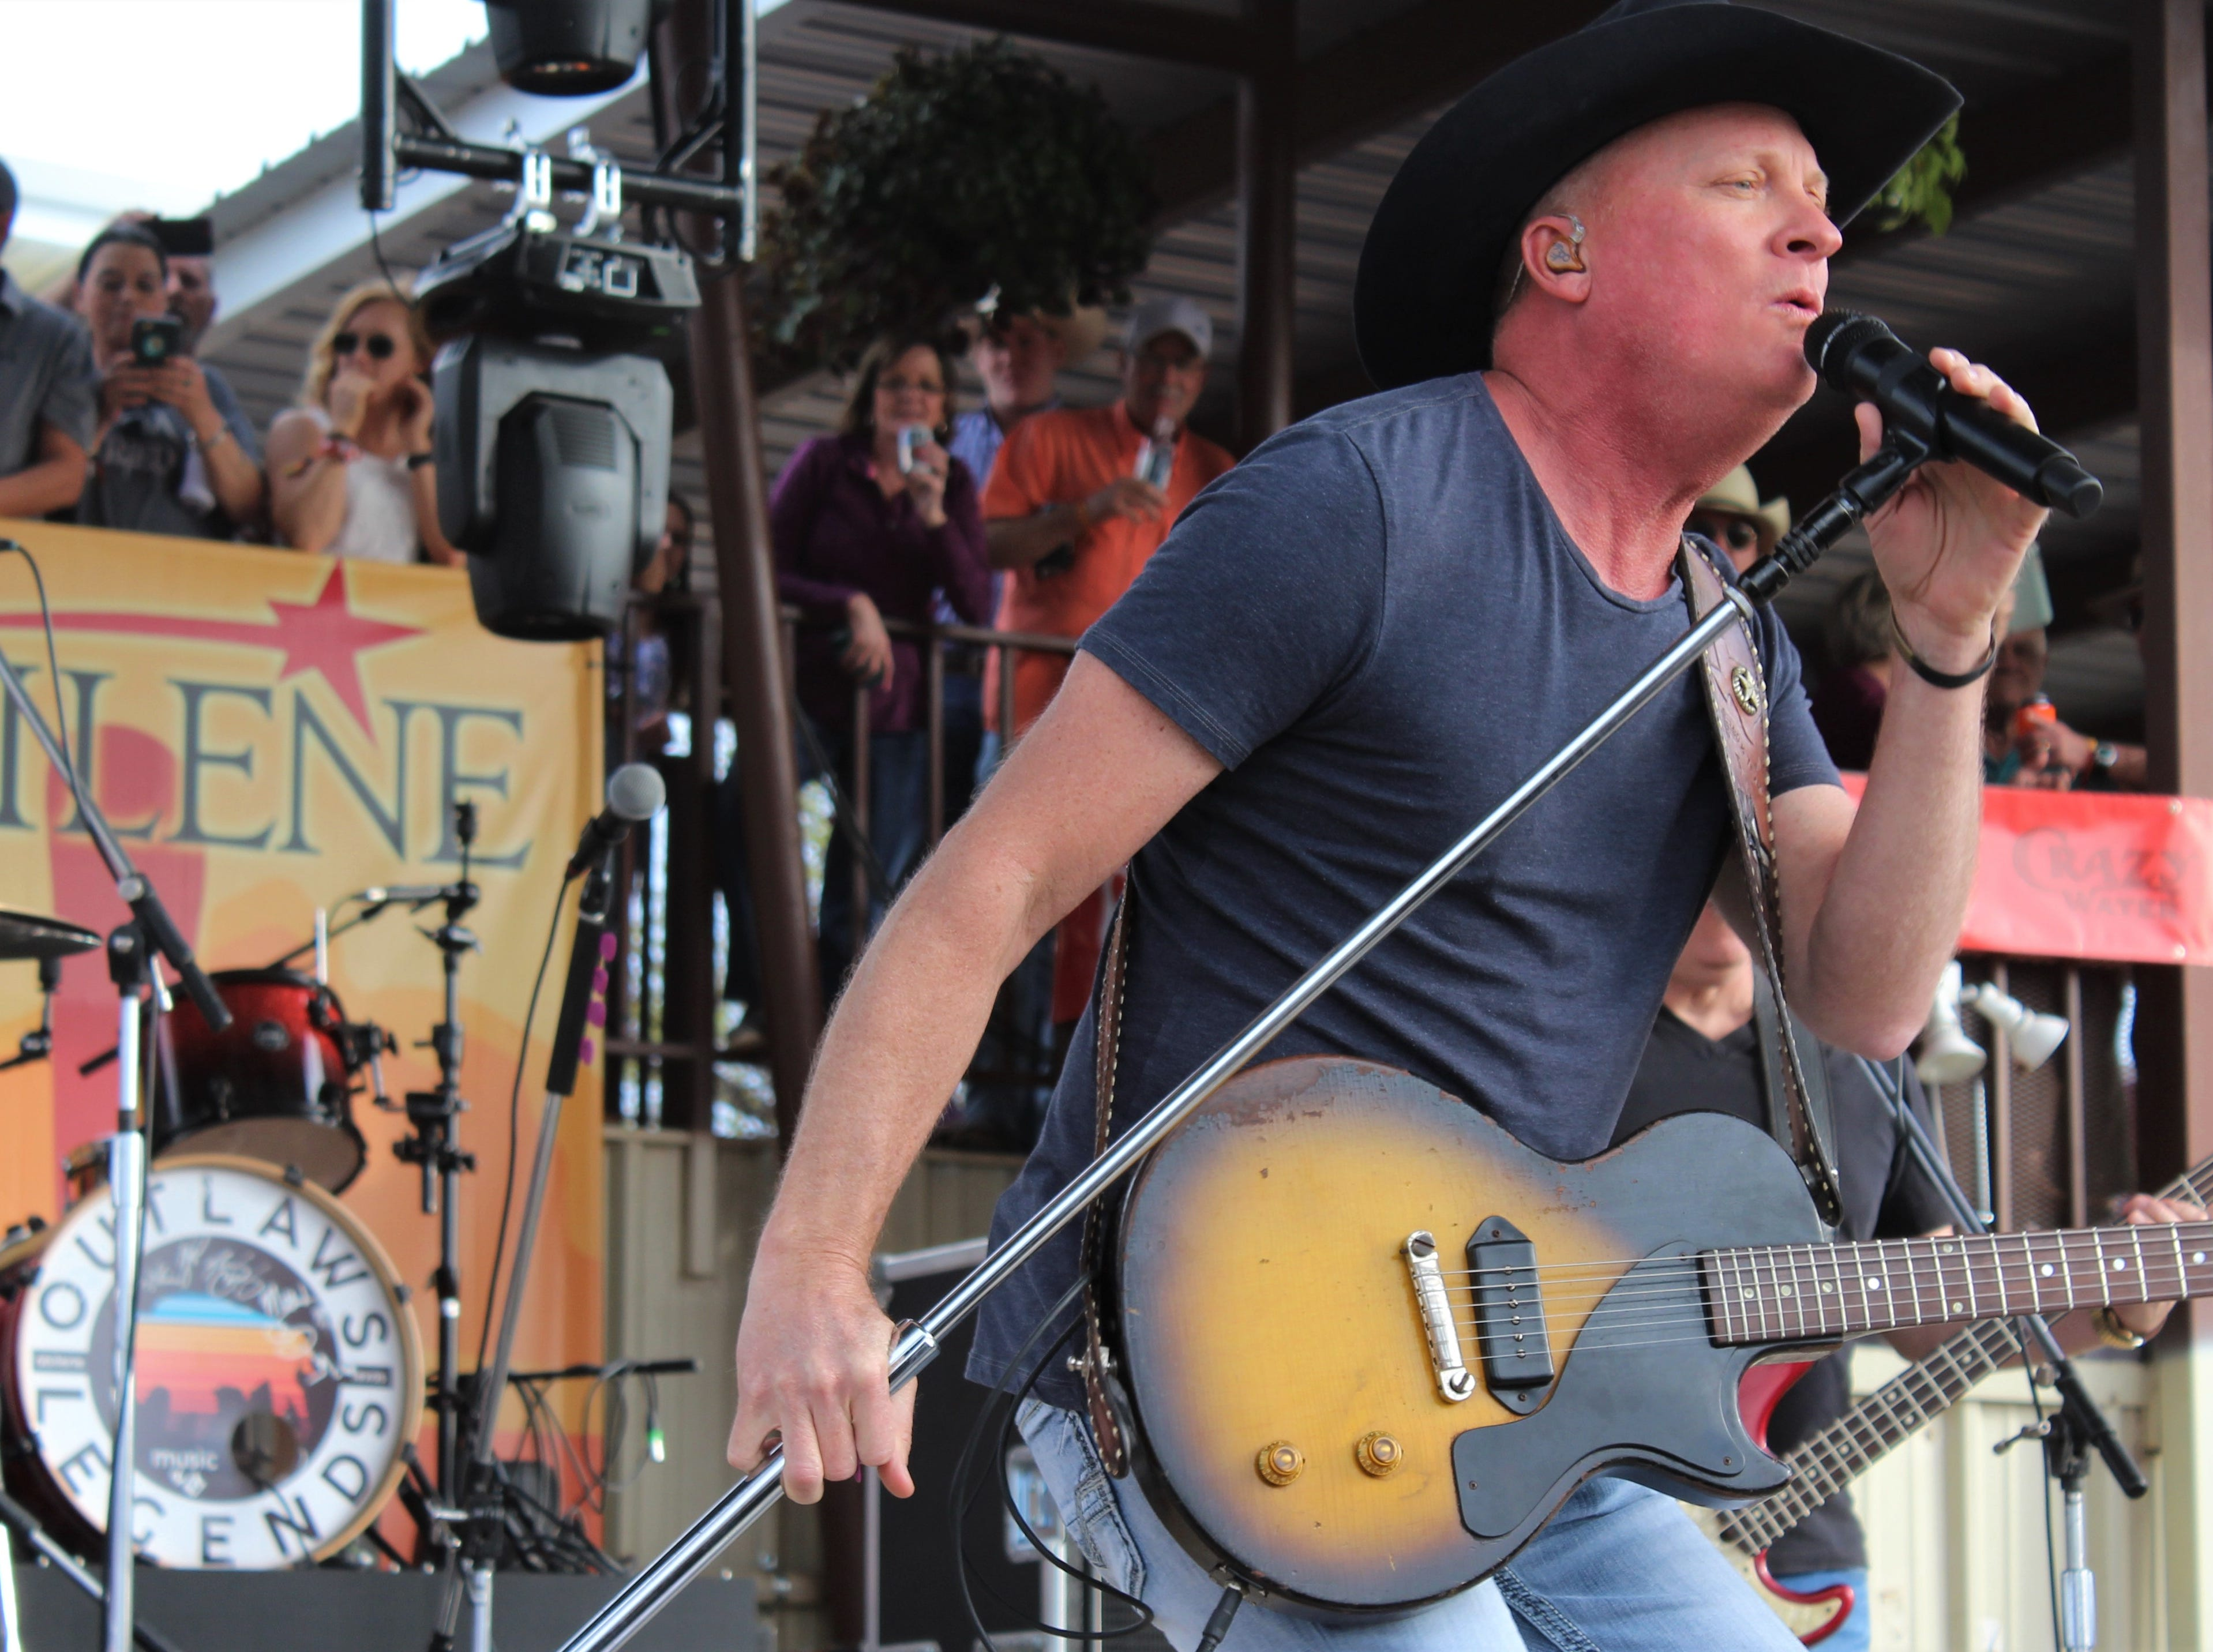 It did not take long for Kevin Fowler to fire up fans Saturday afternoon March 23, 2019, at the 9th Outlaws & Legends Music Festival. In fact, it started when he came on stage.